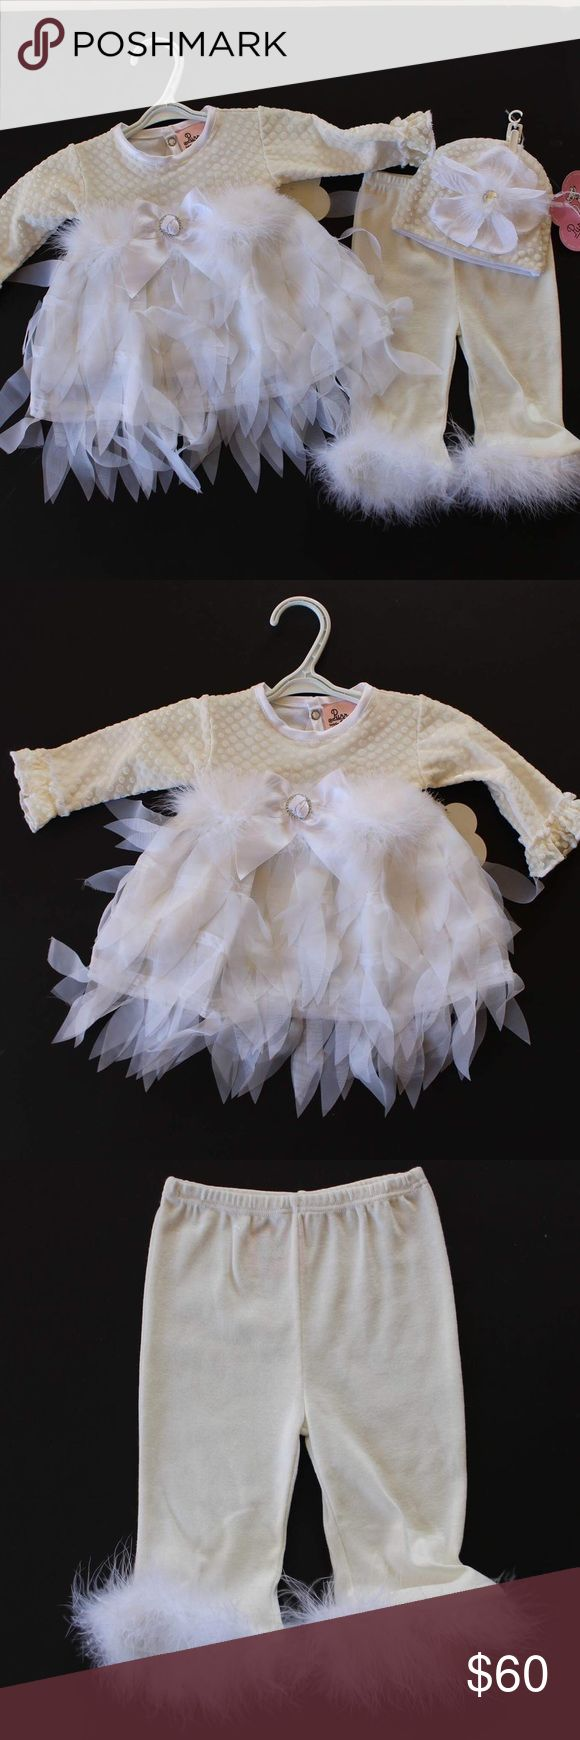 3 piece white Swan Lake outfit All white with feathers tulle and maribou.. shirt with polkadot velour, adorned with satin now with rhinestone buckle, layered tulle and feathers with maribou belt. Stretch pants with maribou around ankles, matching hat with flower, rhinestone and  feathers. Brand new with tags from children's boutique ... perfect change into outfit for Baptism or snow-white holiday outfit! Purrfect  Matching Sets